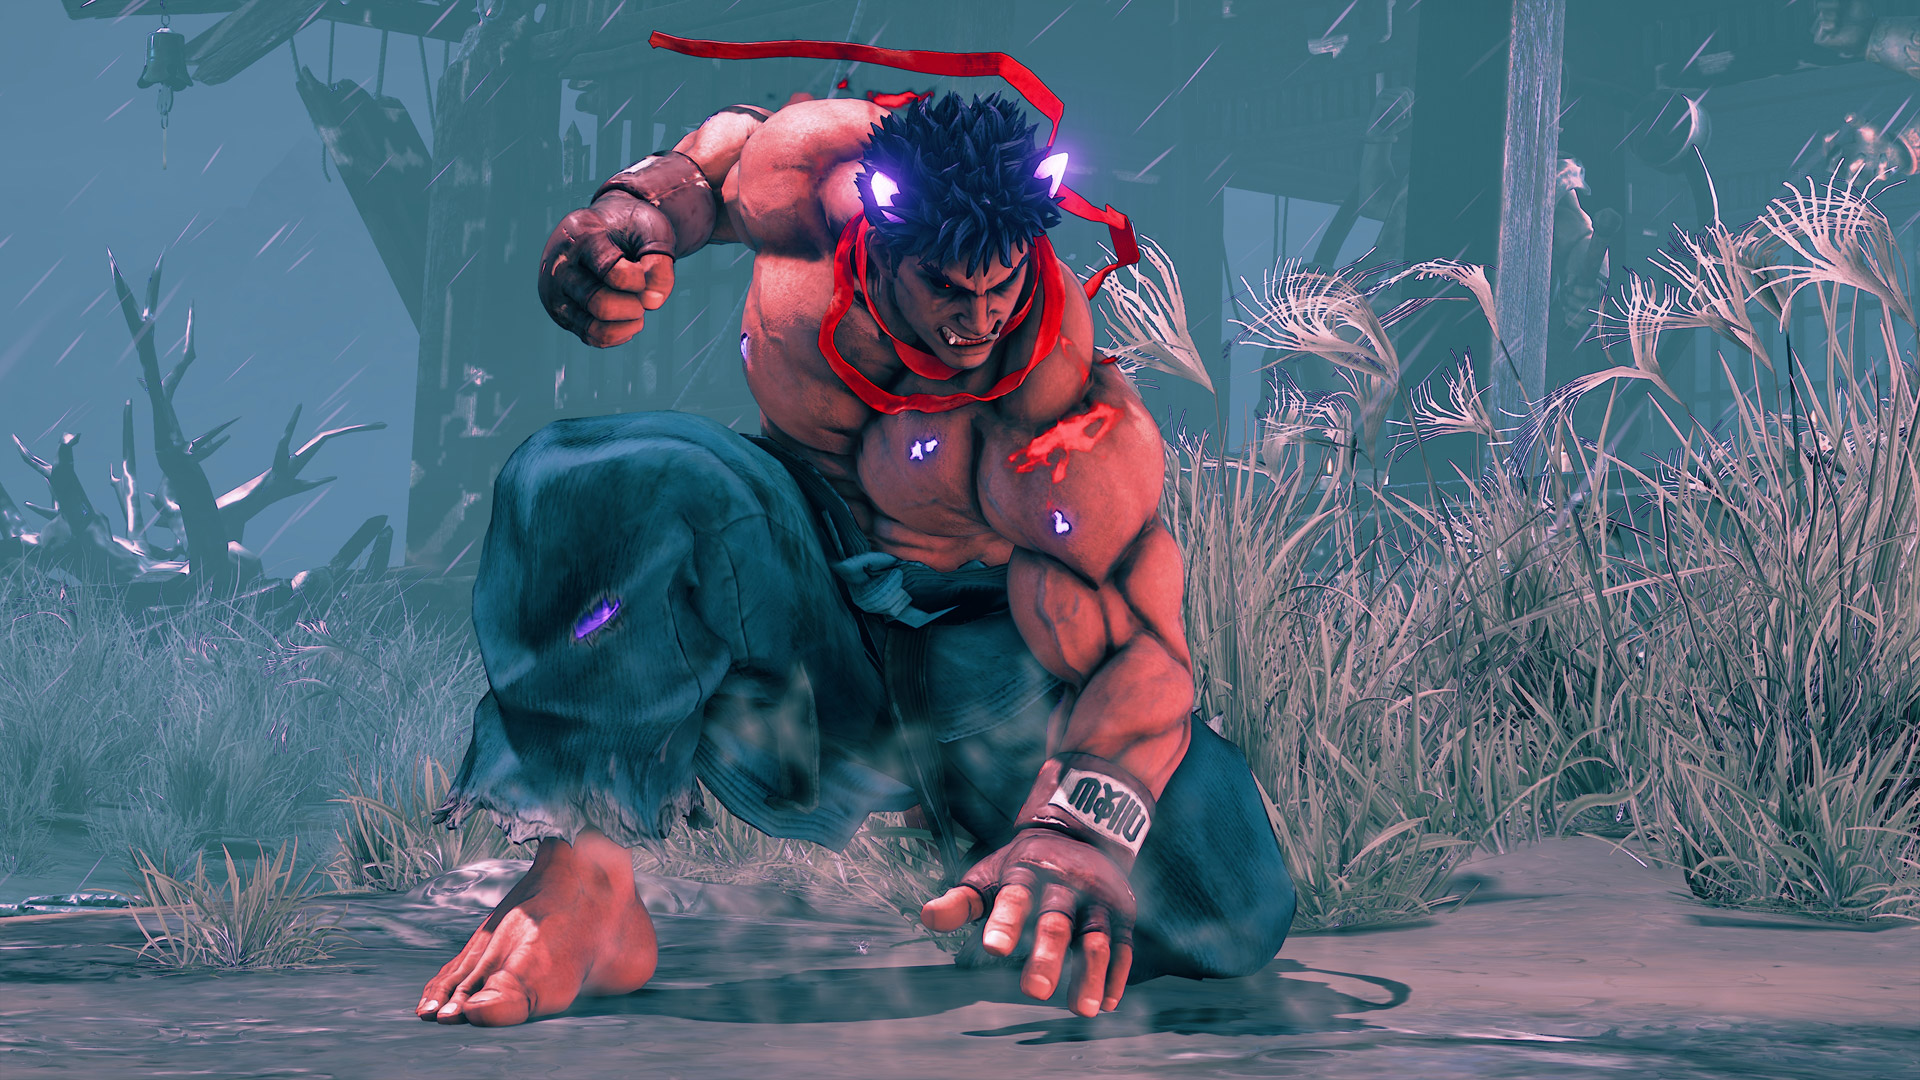 Free Street Fighter V Wallpaper in 1920x1080